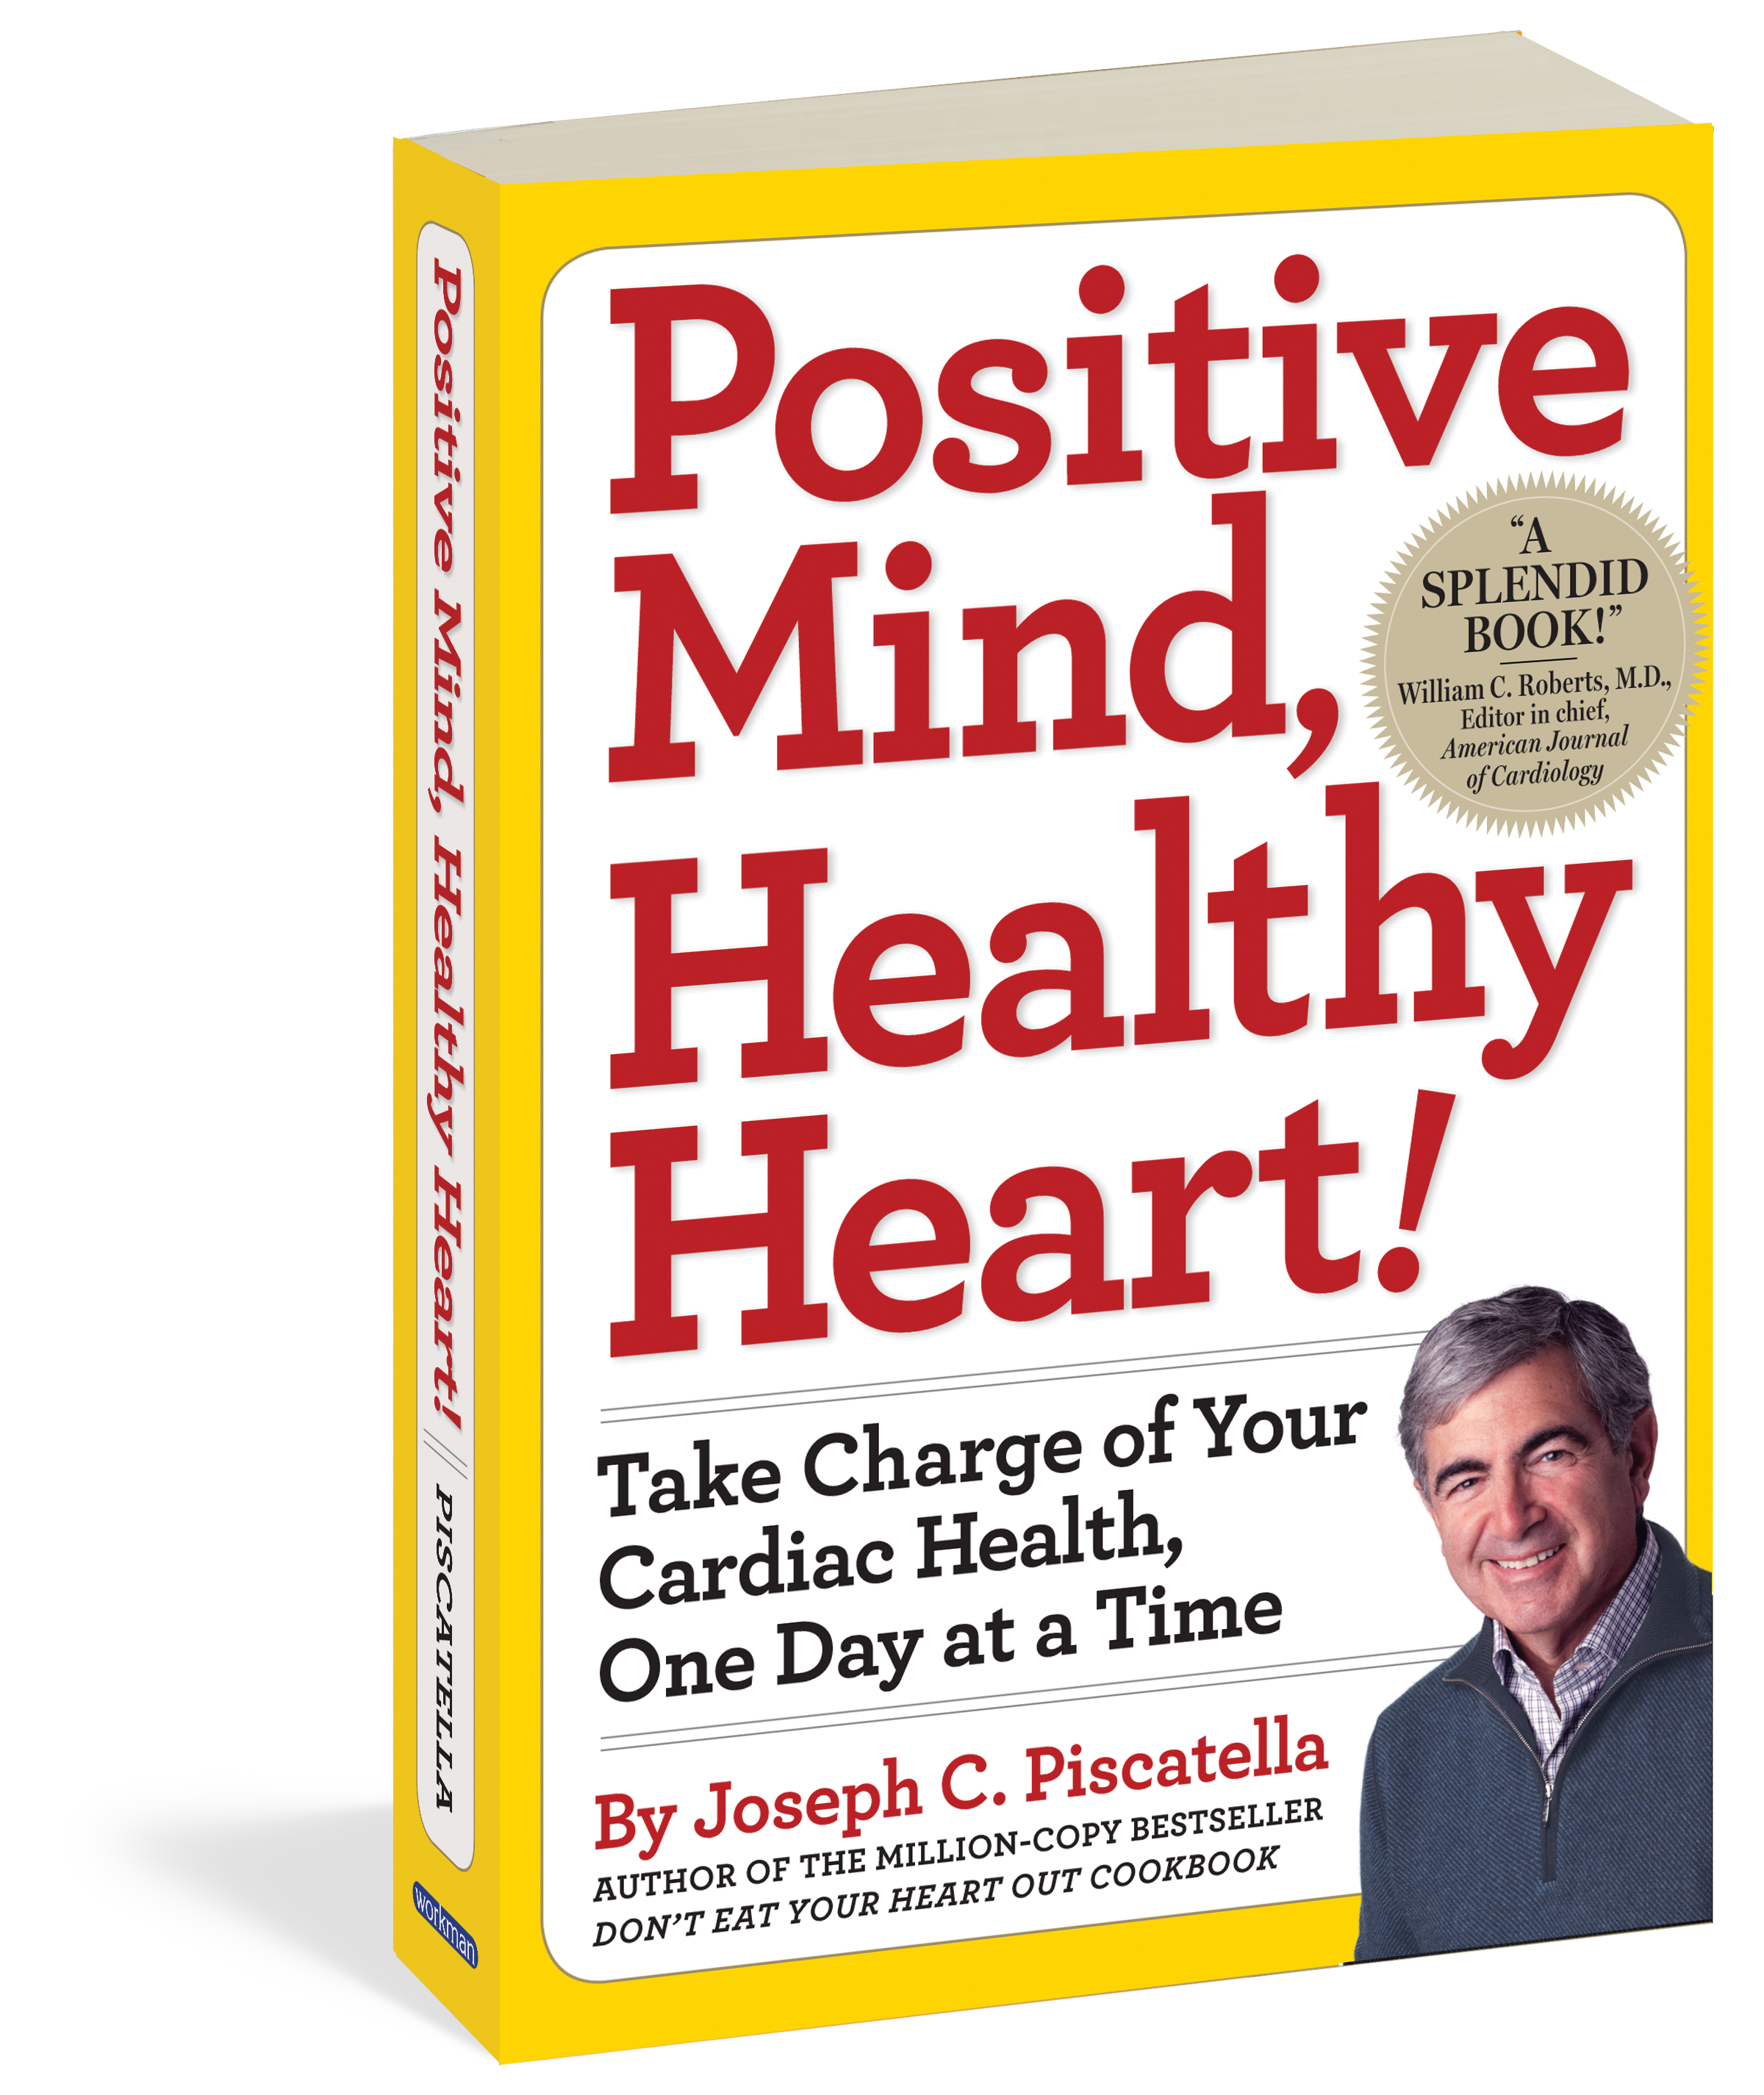 Positive Mind, Healthy Heart! - Workman Publishing